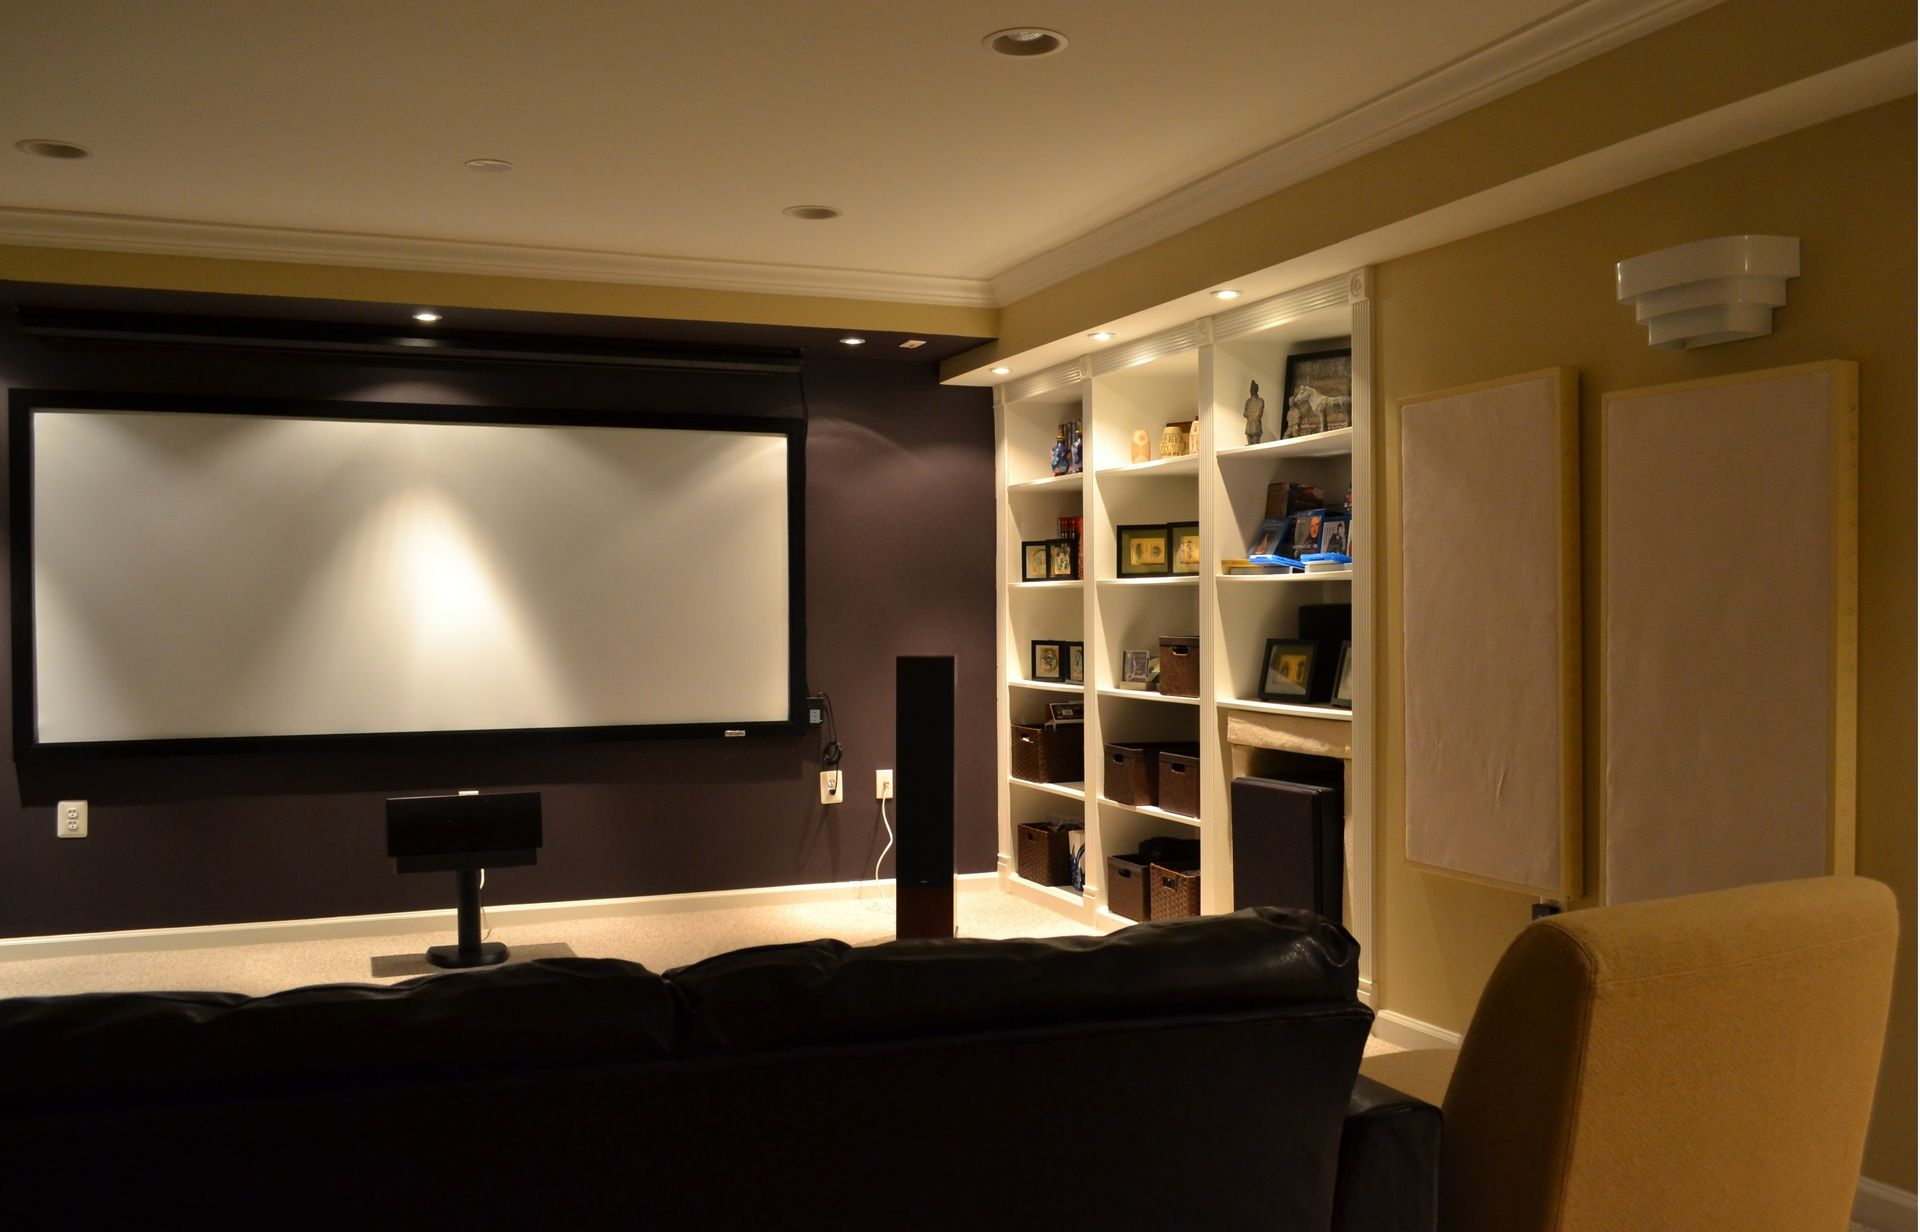 Jjmbxkb's Home Theater Gallery